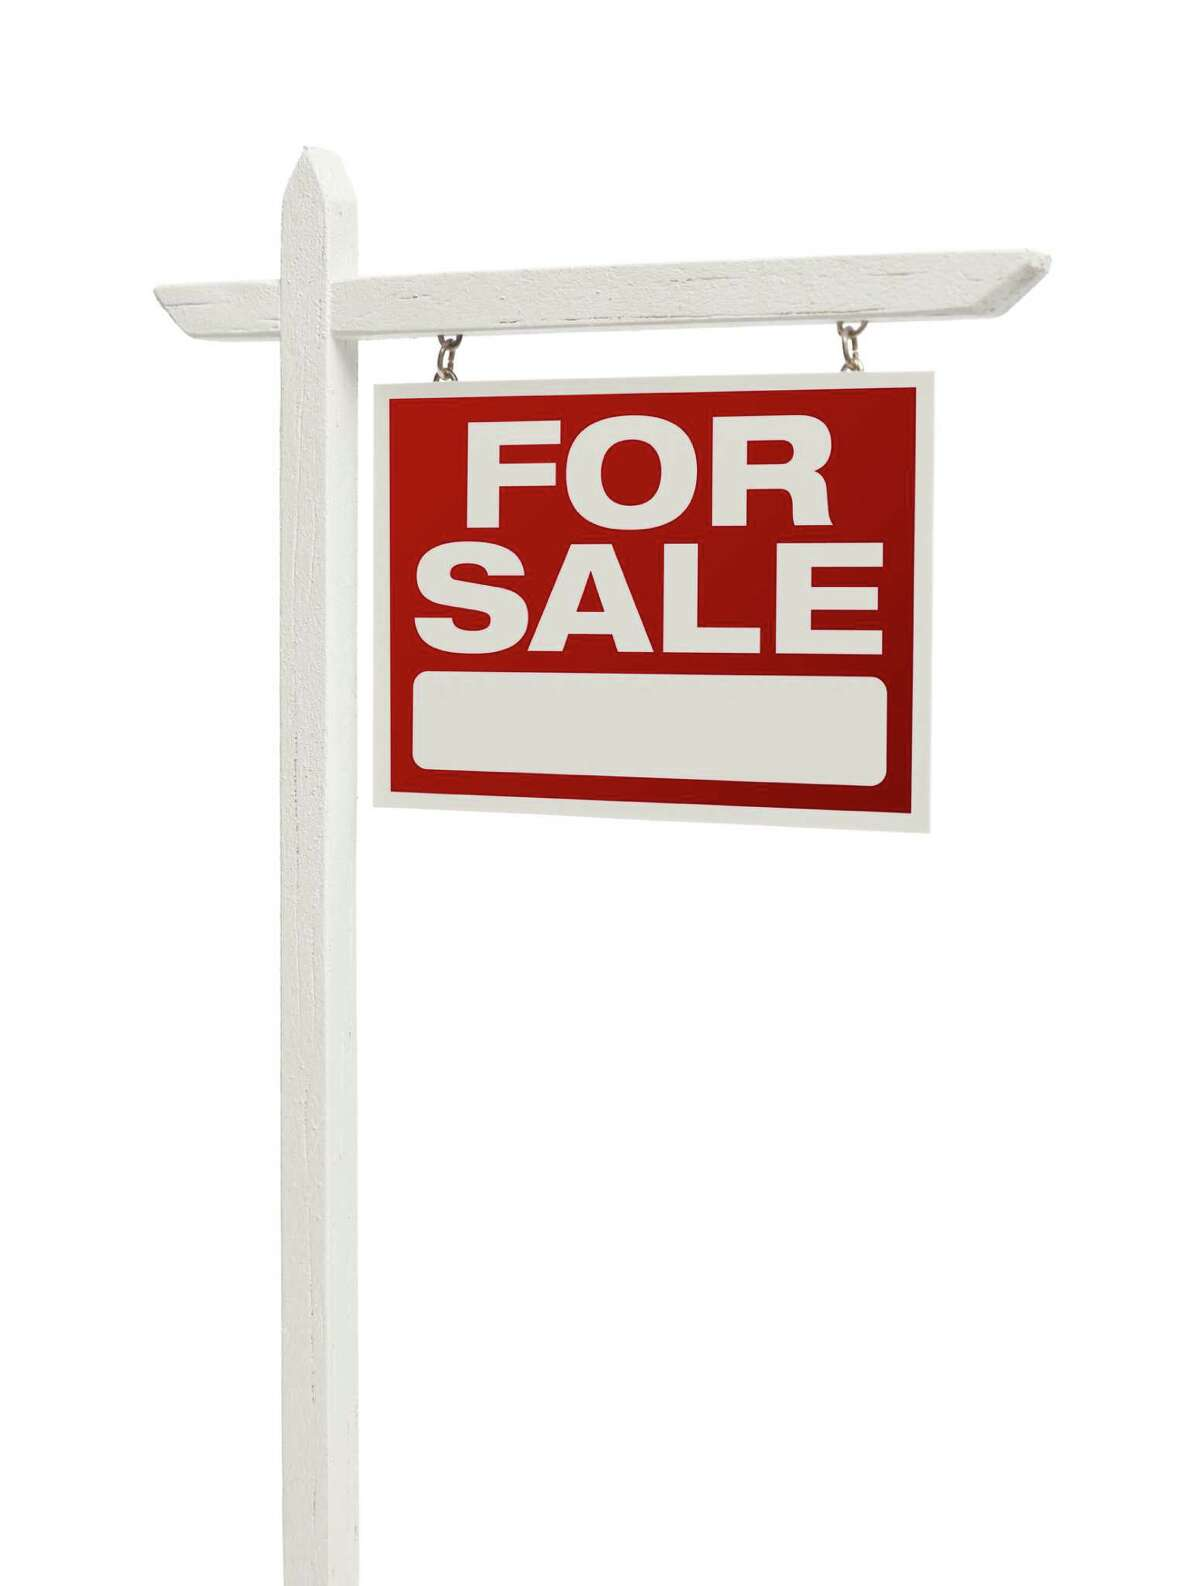 Red For Sale Real Estate Sign on White with Clipping Path Isolated on a White Background. FOTOLIA